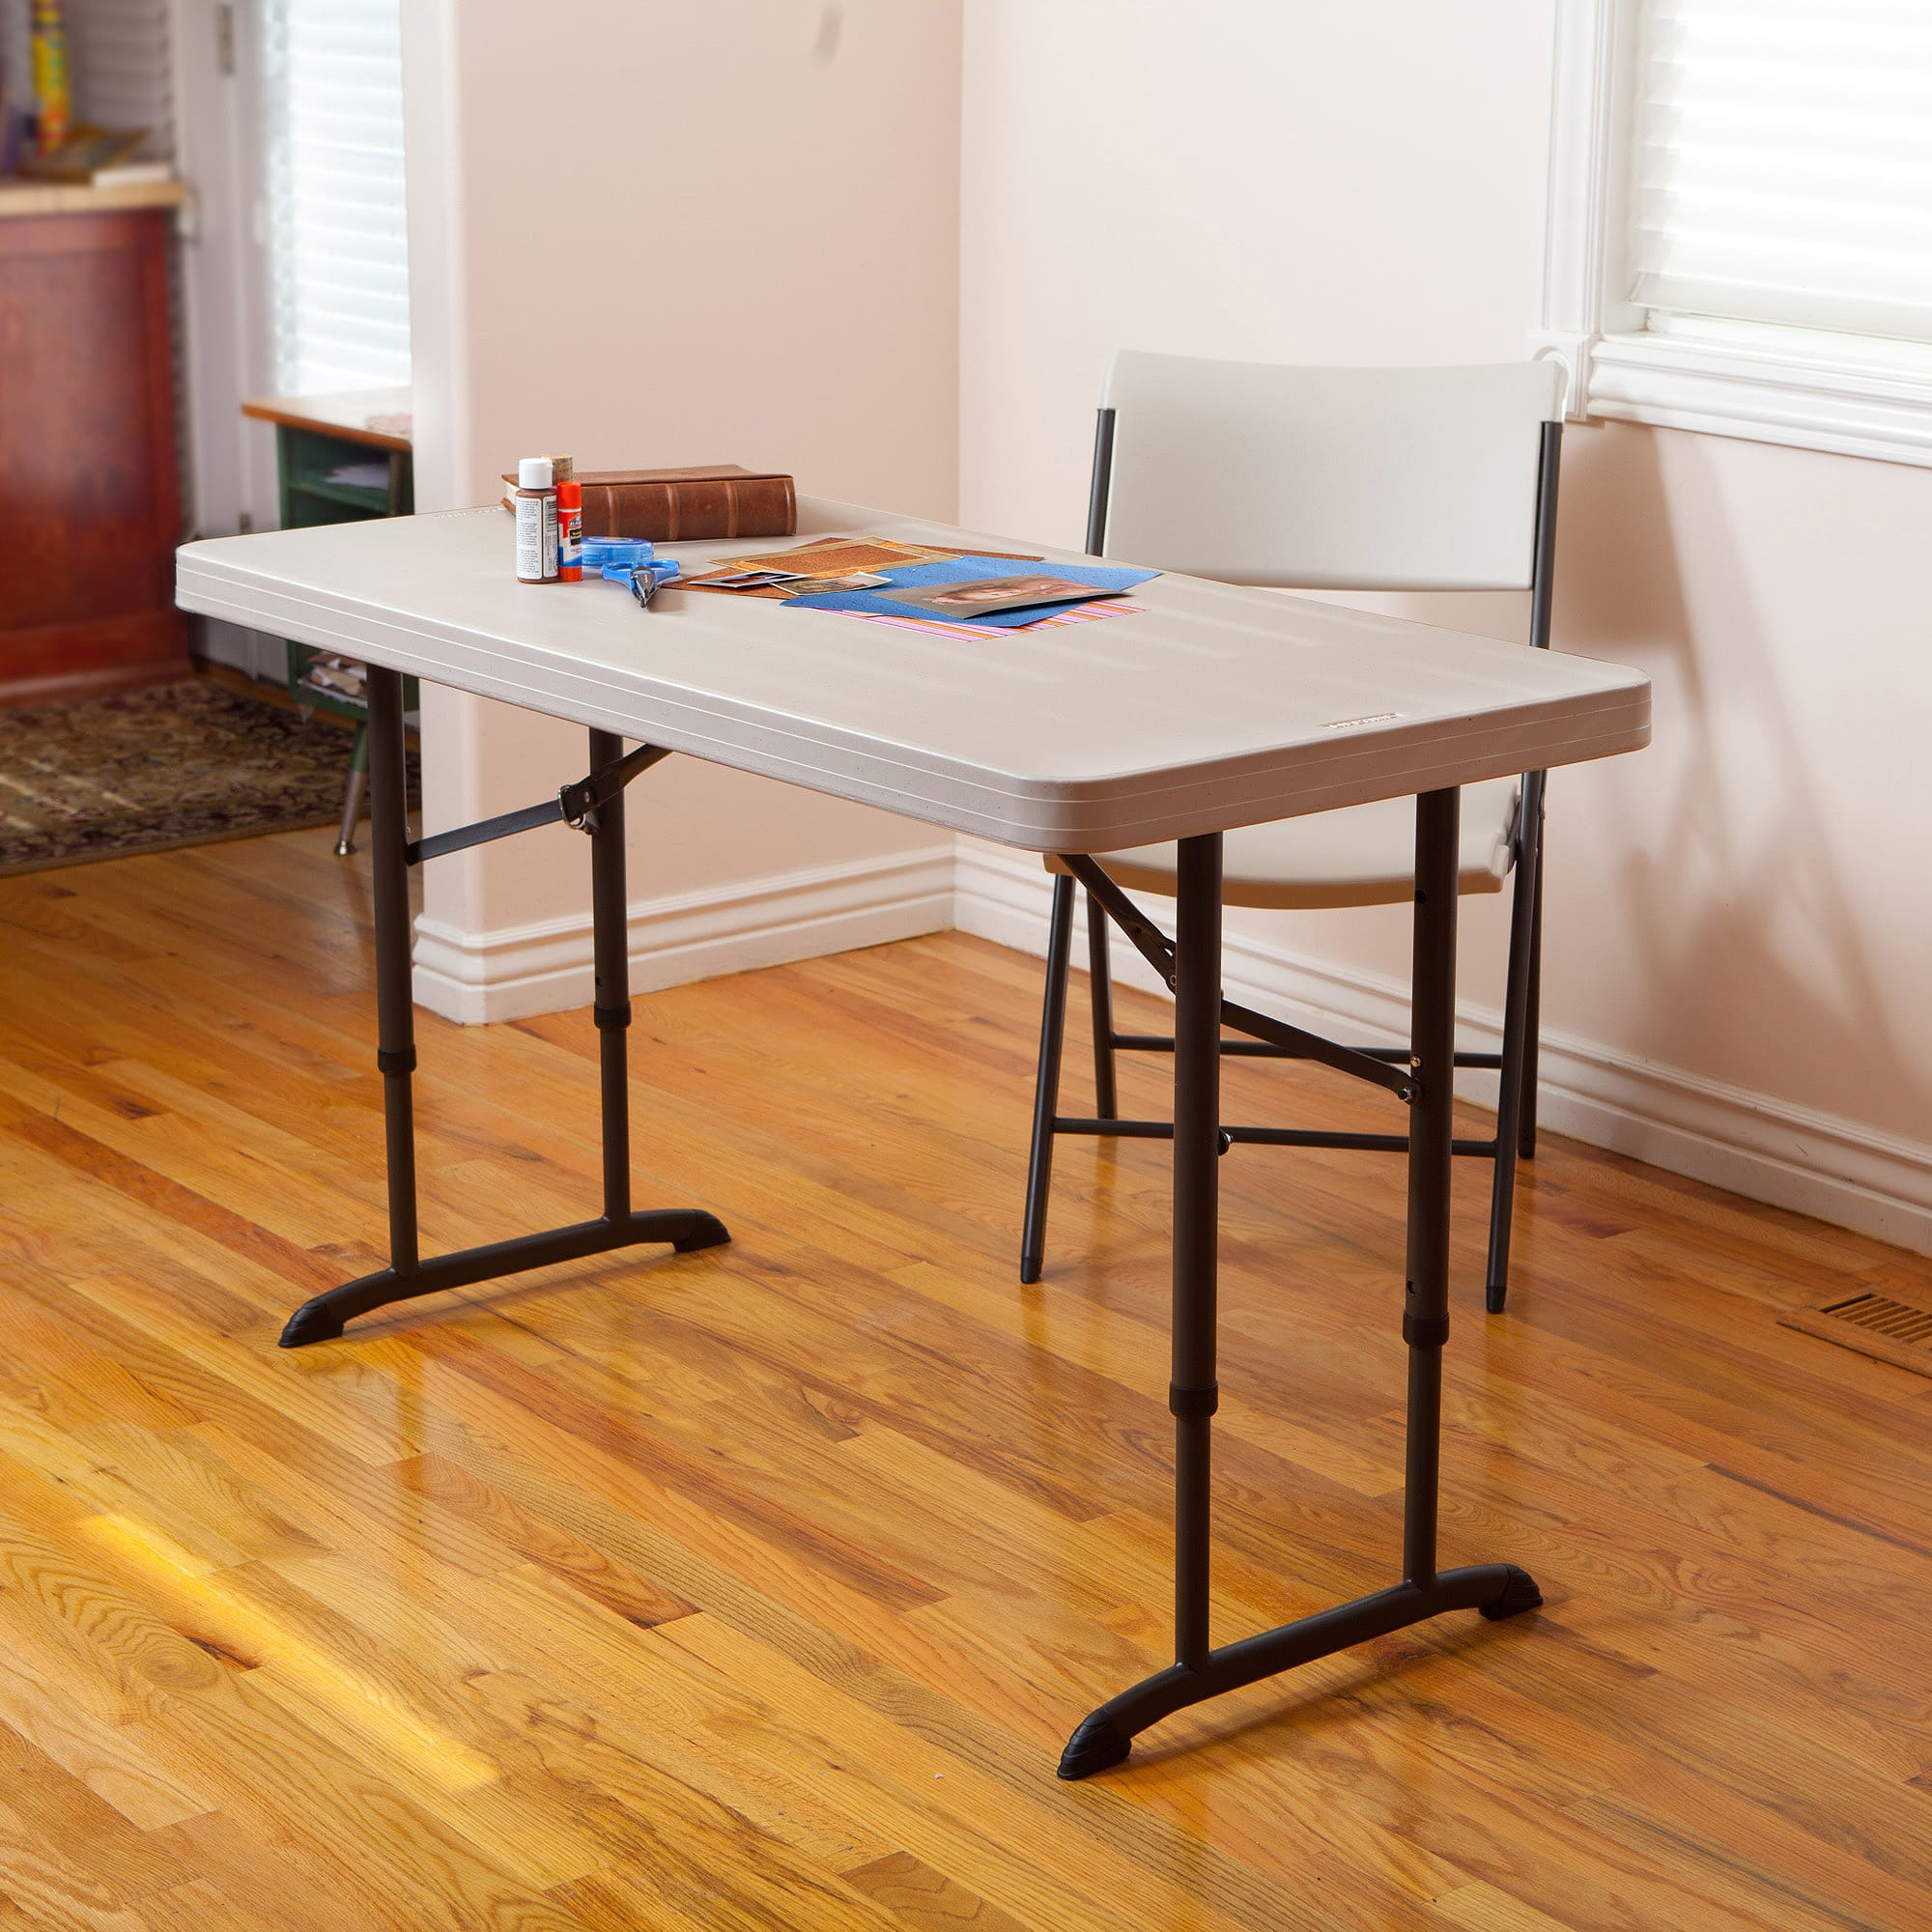 Lifetime 4' Adjustable Table, Almond - $29.60 with Walmart Pickup Discount